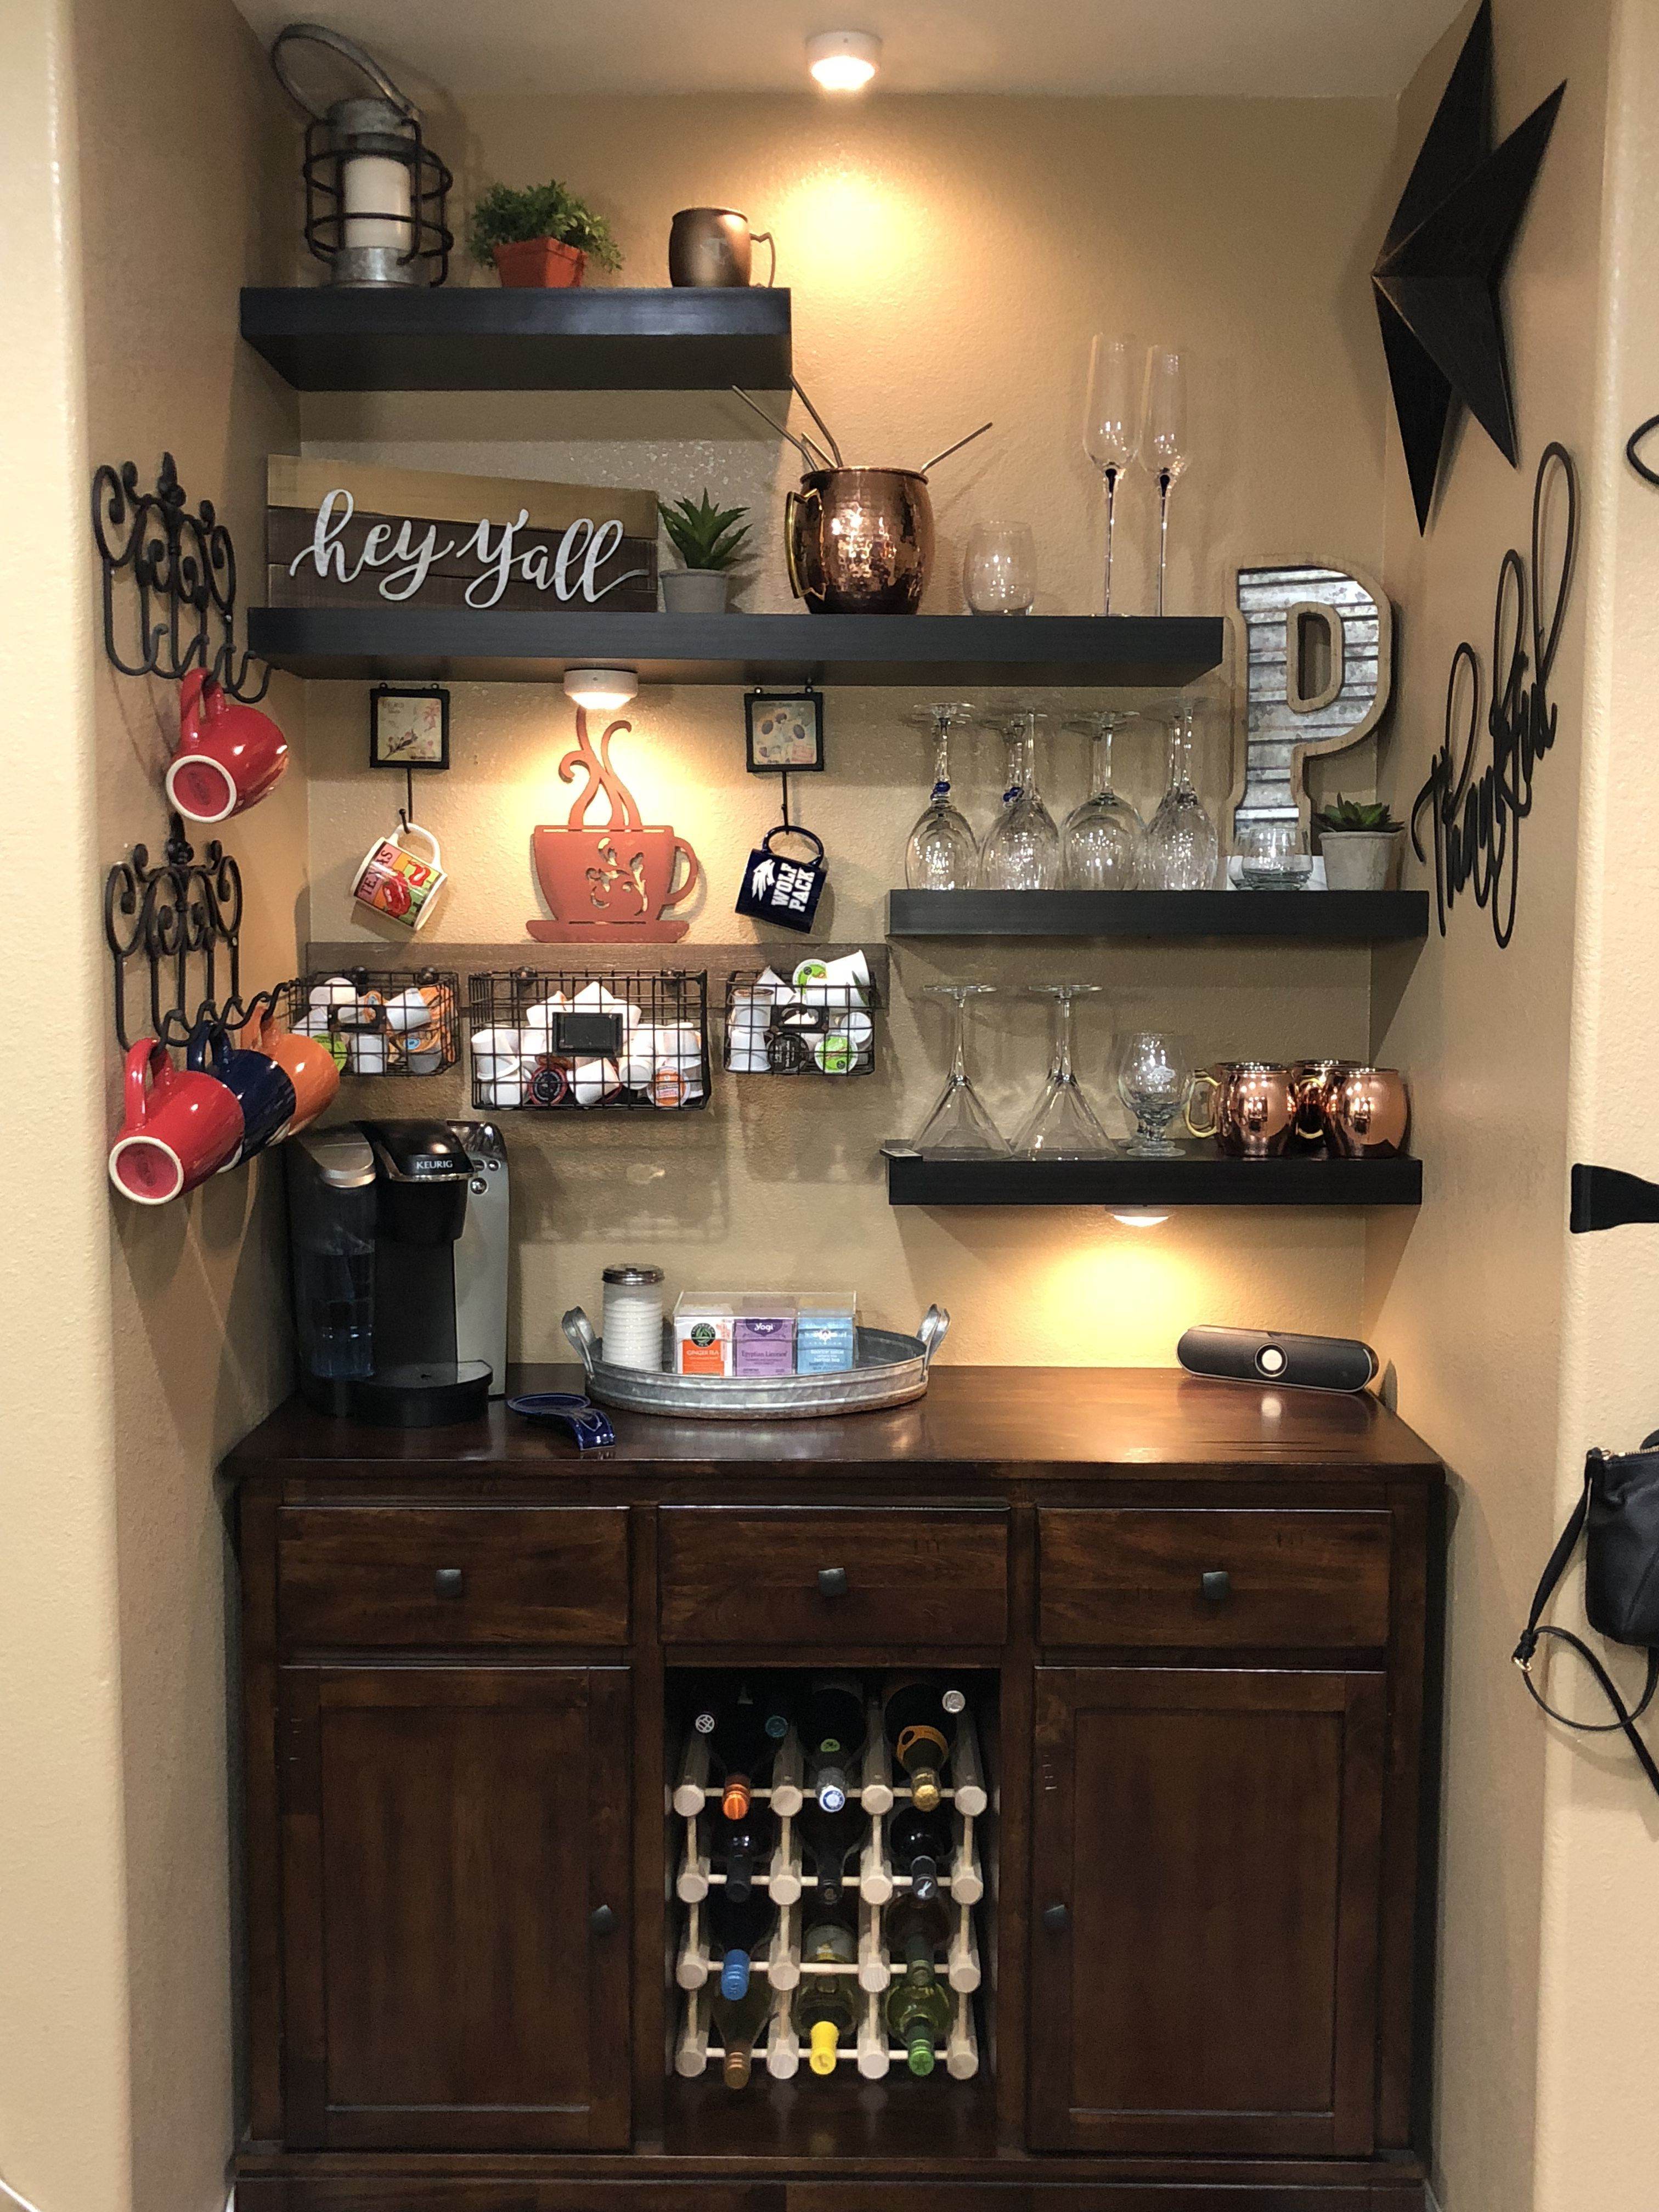 Created My Coffee/wine Bar! So Pleased How It Turned Out! #barfurnitureideashouses In 2019